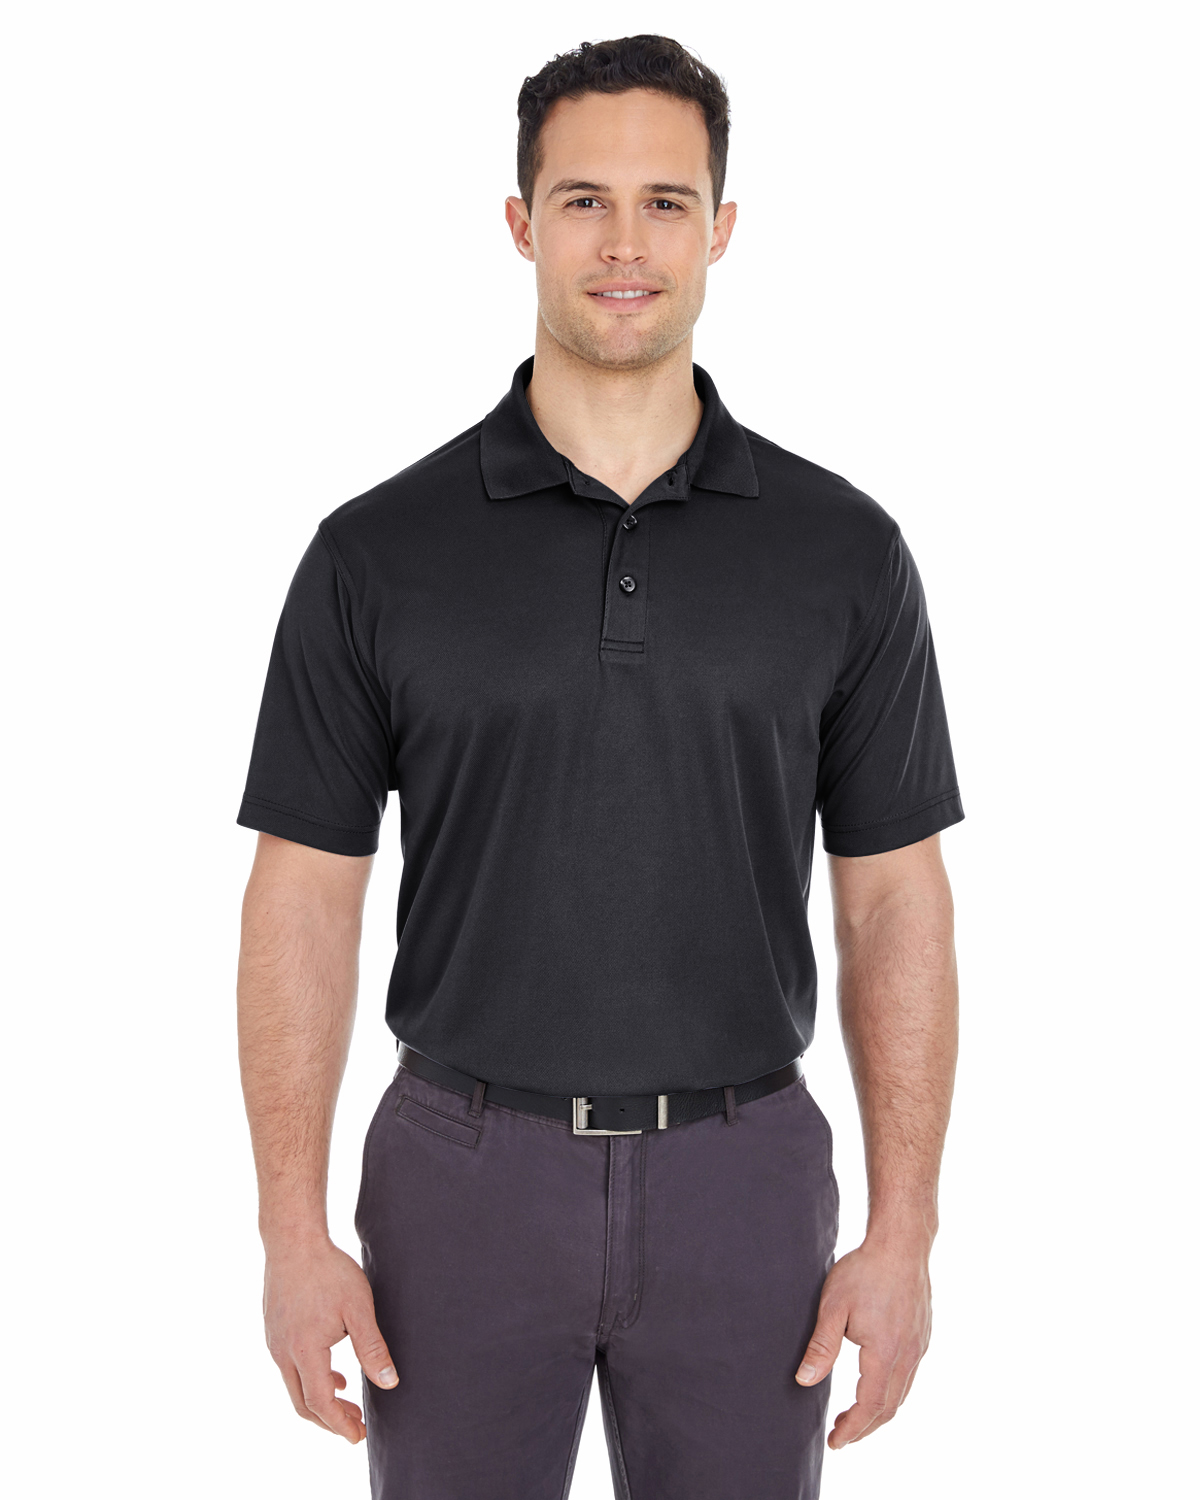 ULTRACLUB - 8210 UltraClub Men's Cool & Dry Mesh Pique Polo